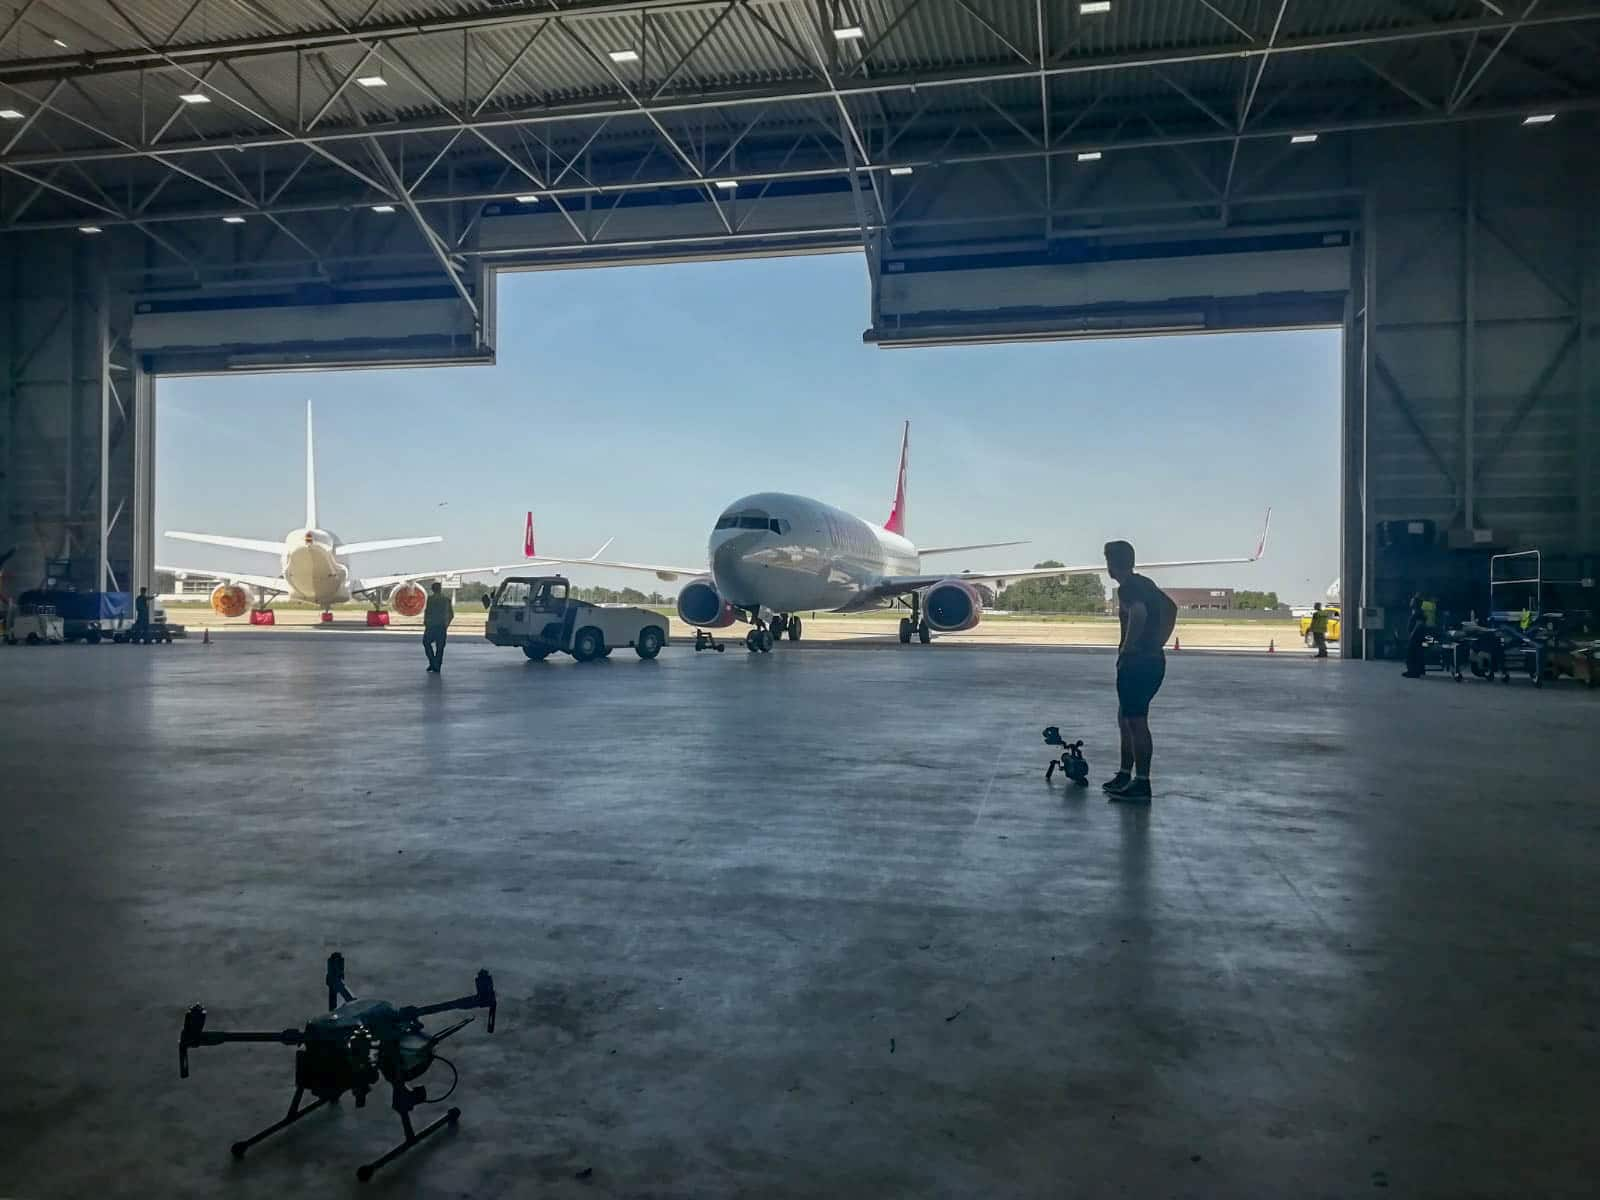 aircraft parking and drone inspection